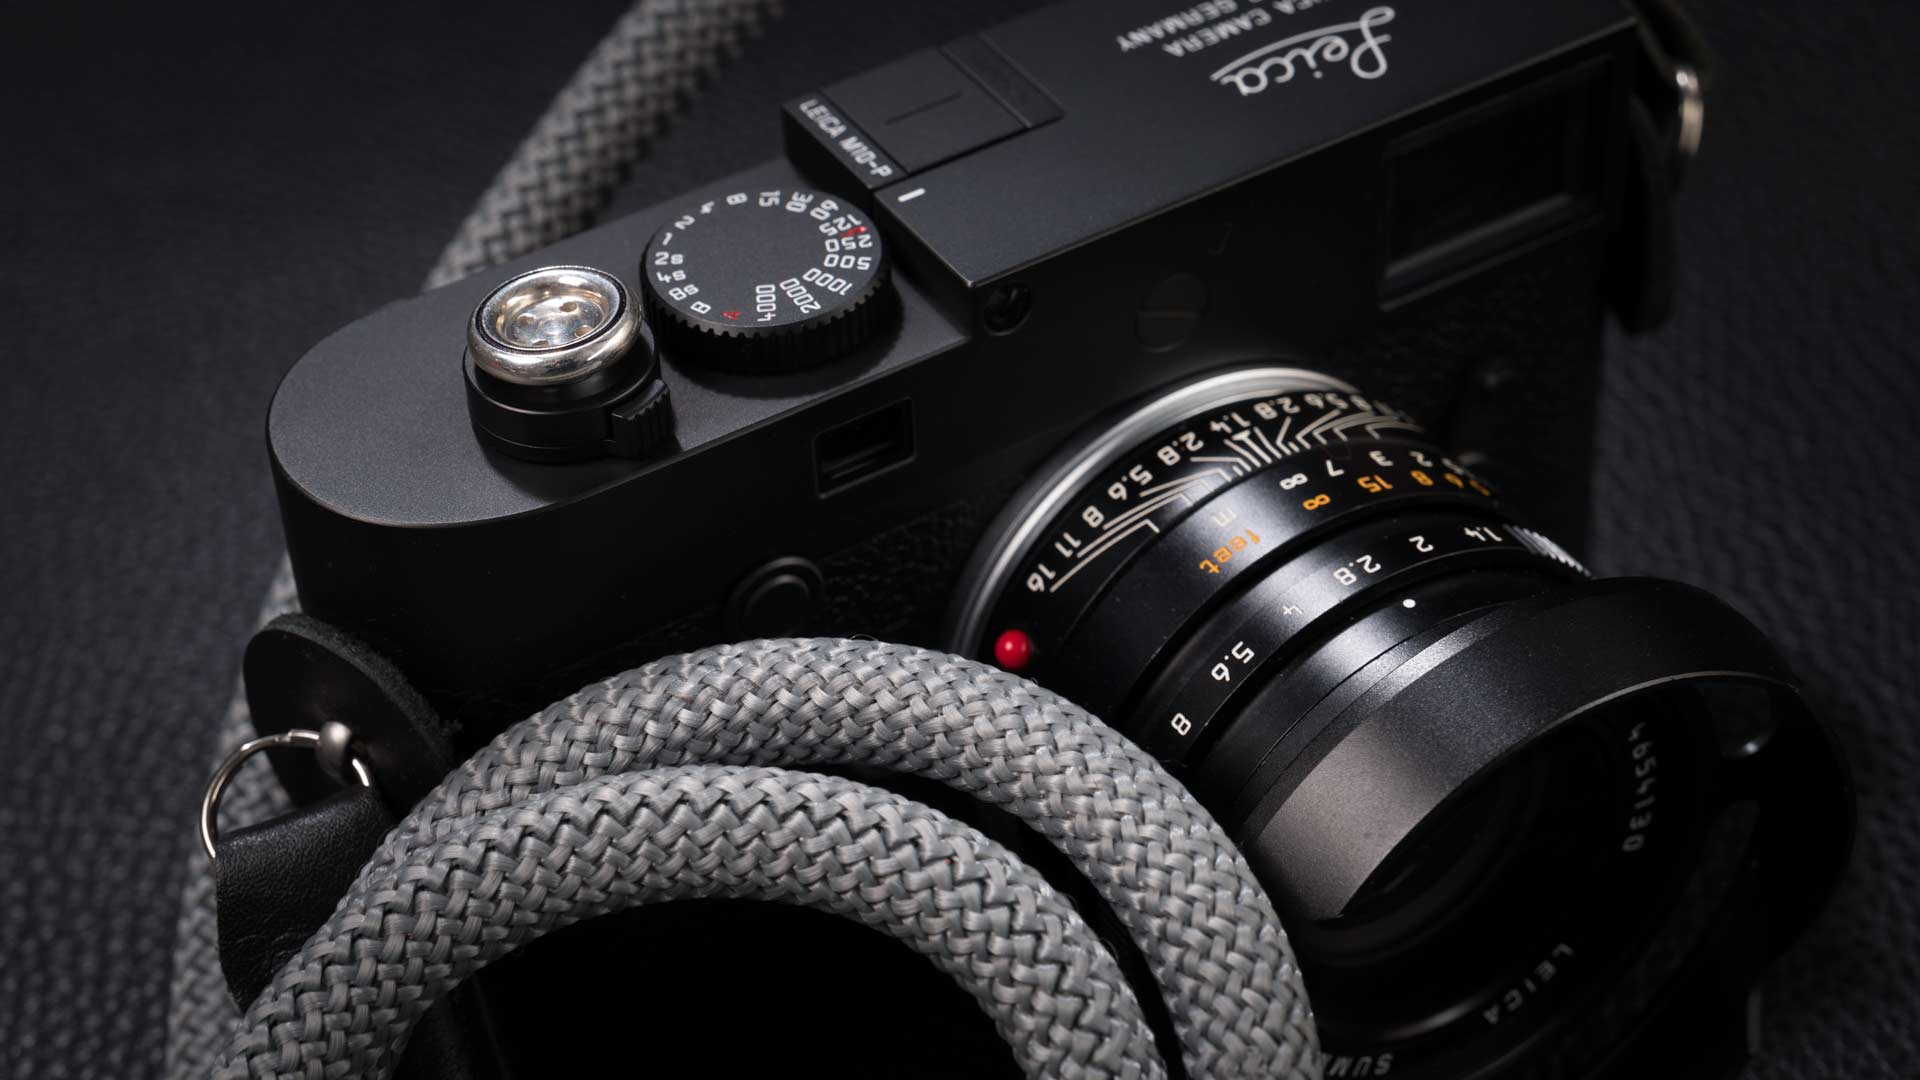 snake strap, rope strap, classic strap, rope camera strap, handmade leather camera strap, leica camera strap, mirrorless camera strap, handmade camera strap, dslr camera strap, silver grey camera strap